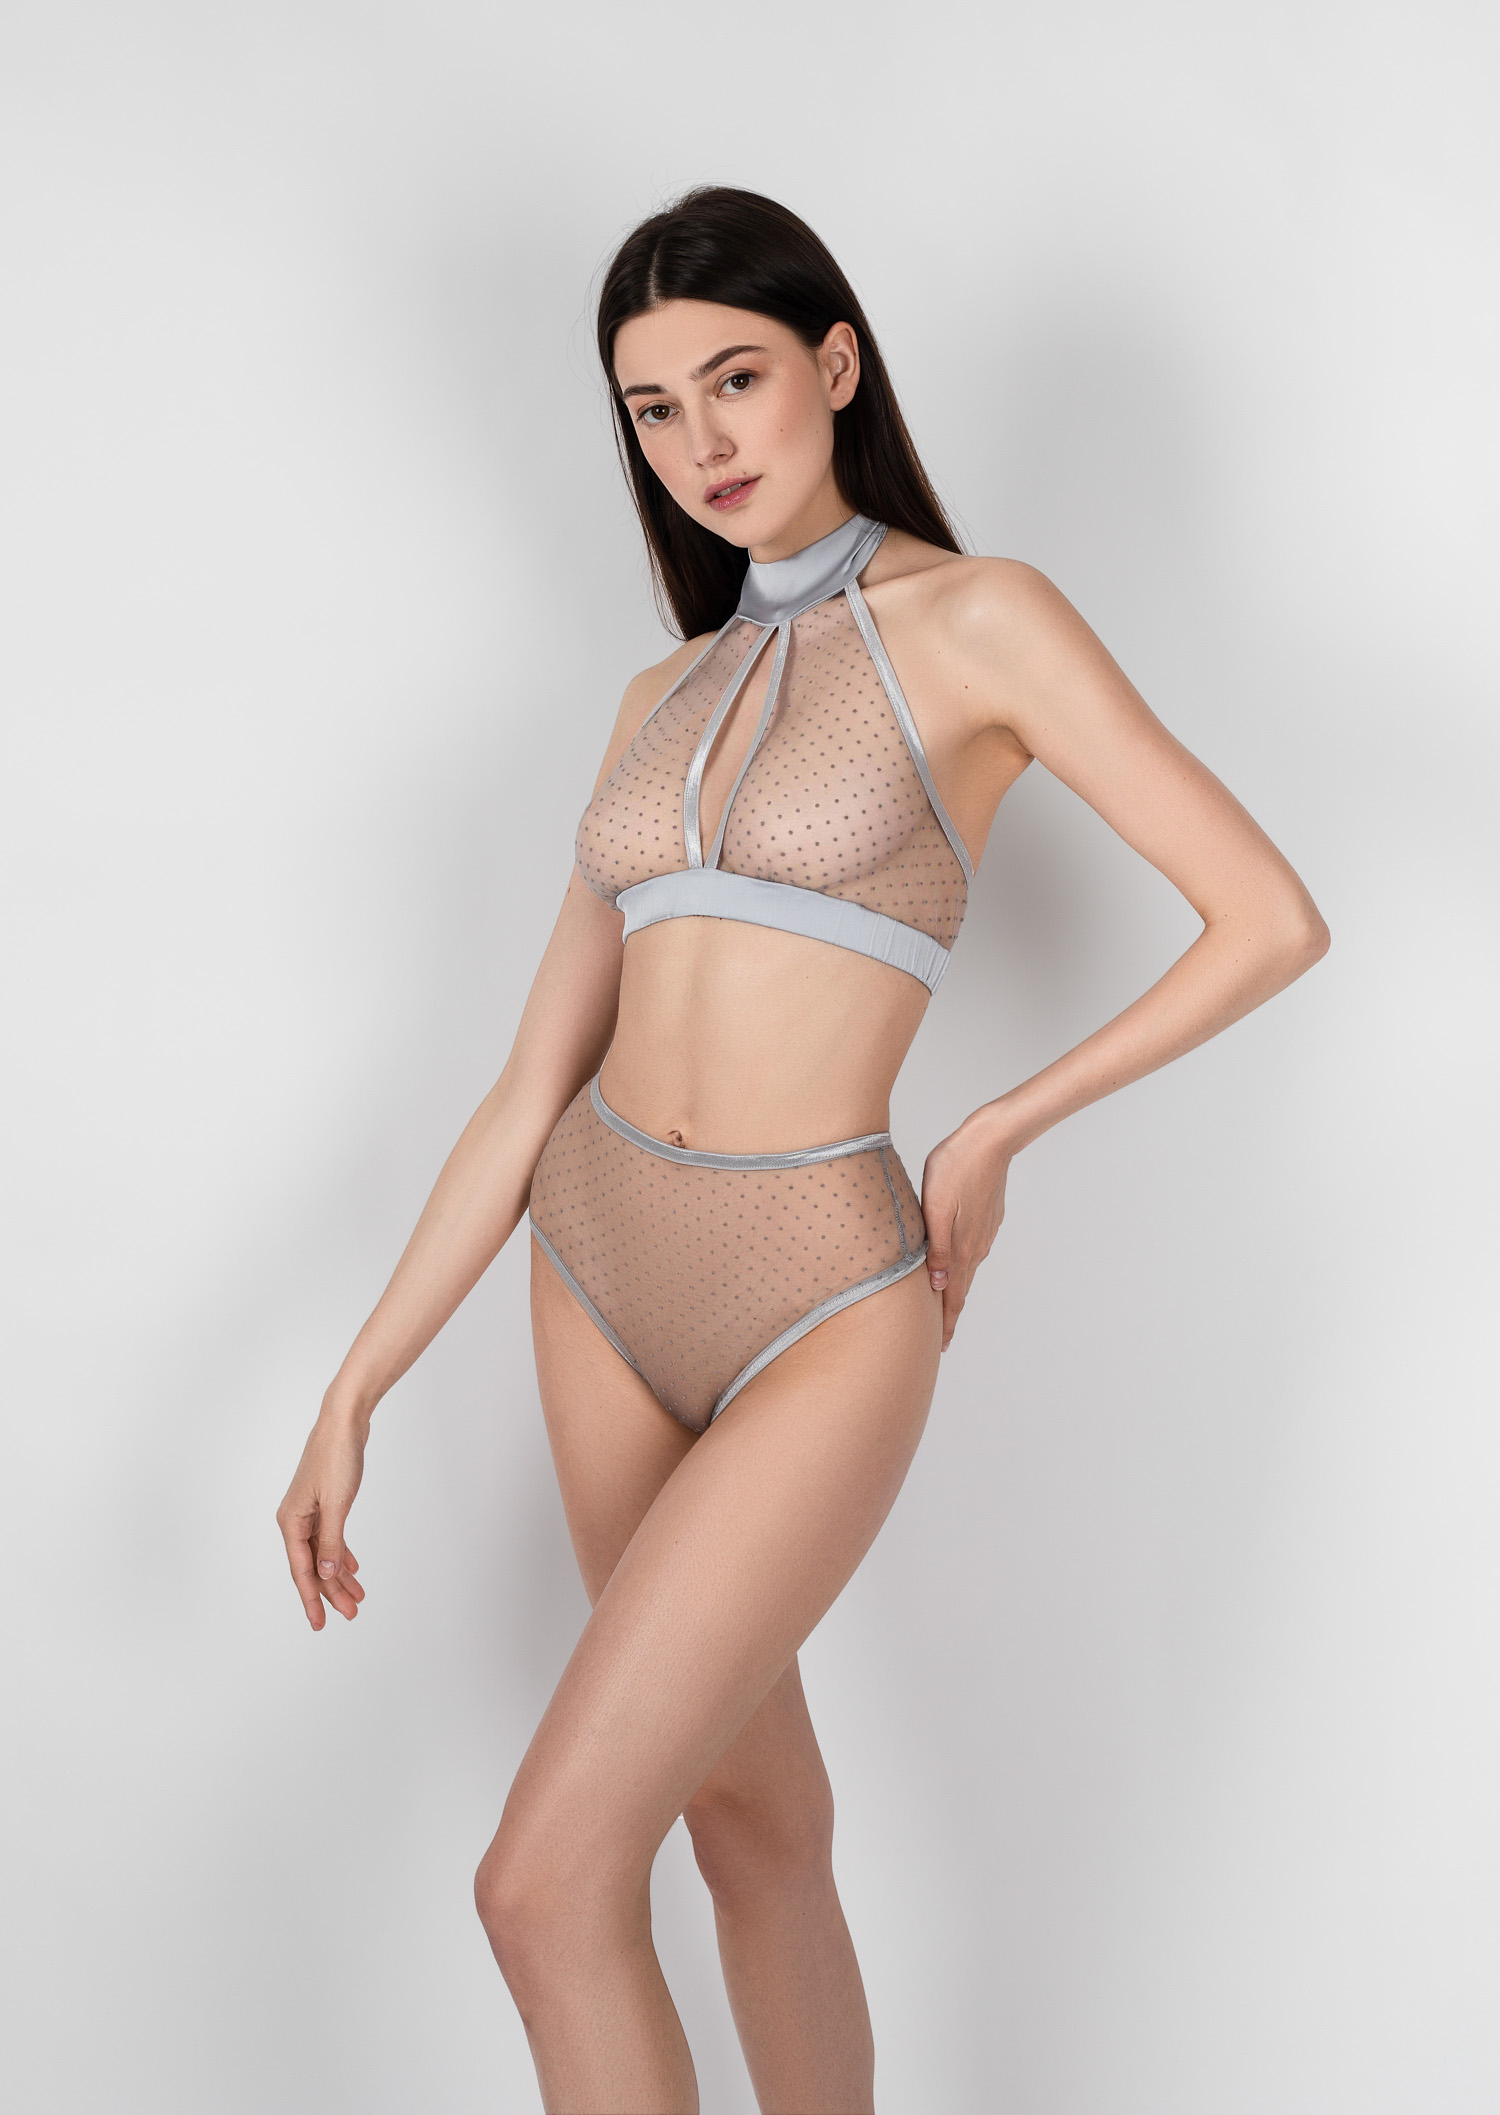 Sexy grey polka dot lingerie set / clear panties with underwired bra / sheer renaissance underwear / transparent erotic lingerie set